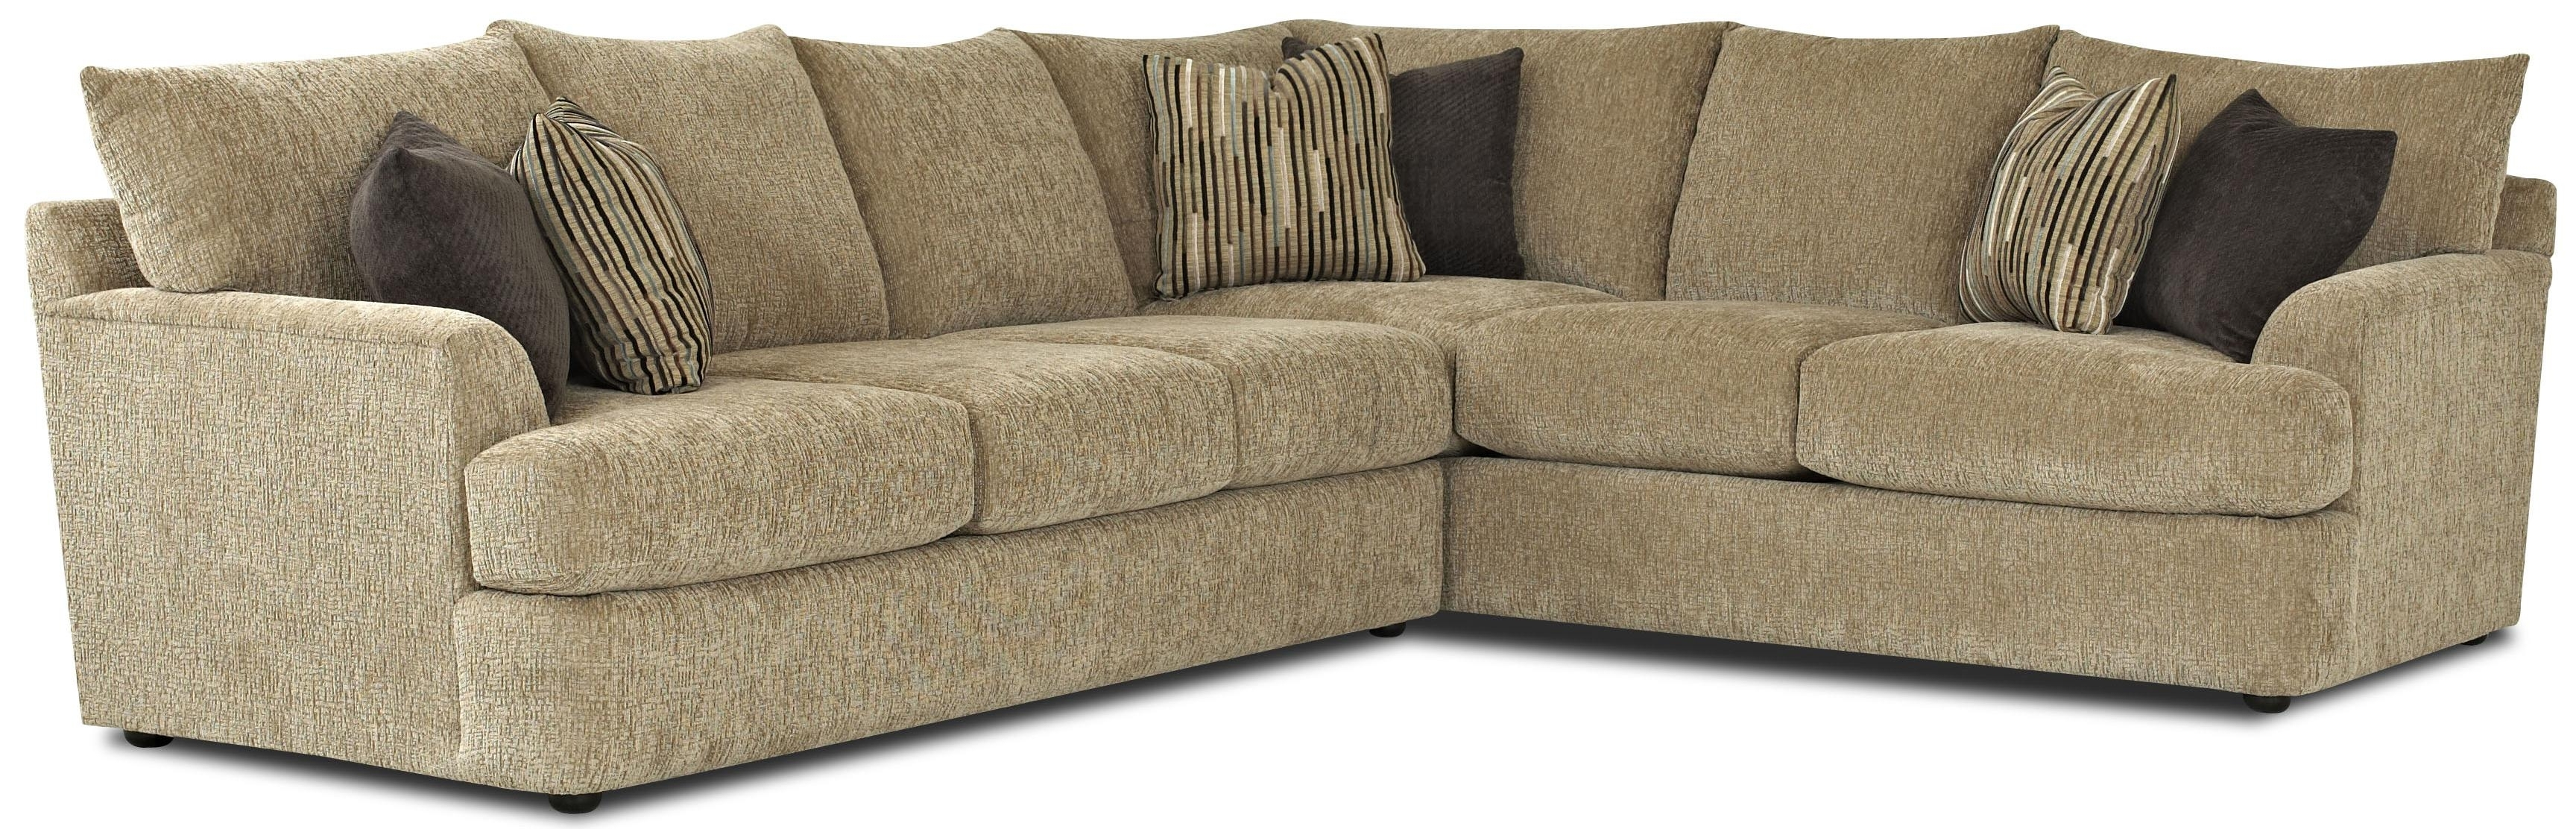 room home toronto living sofa used leather sectional sale inside sofas white best for